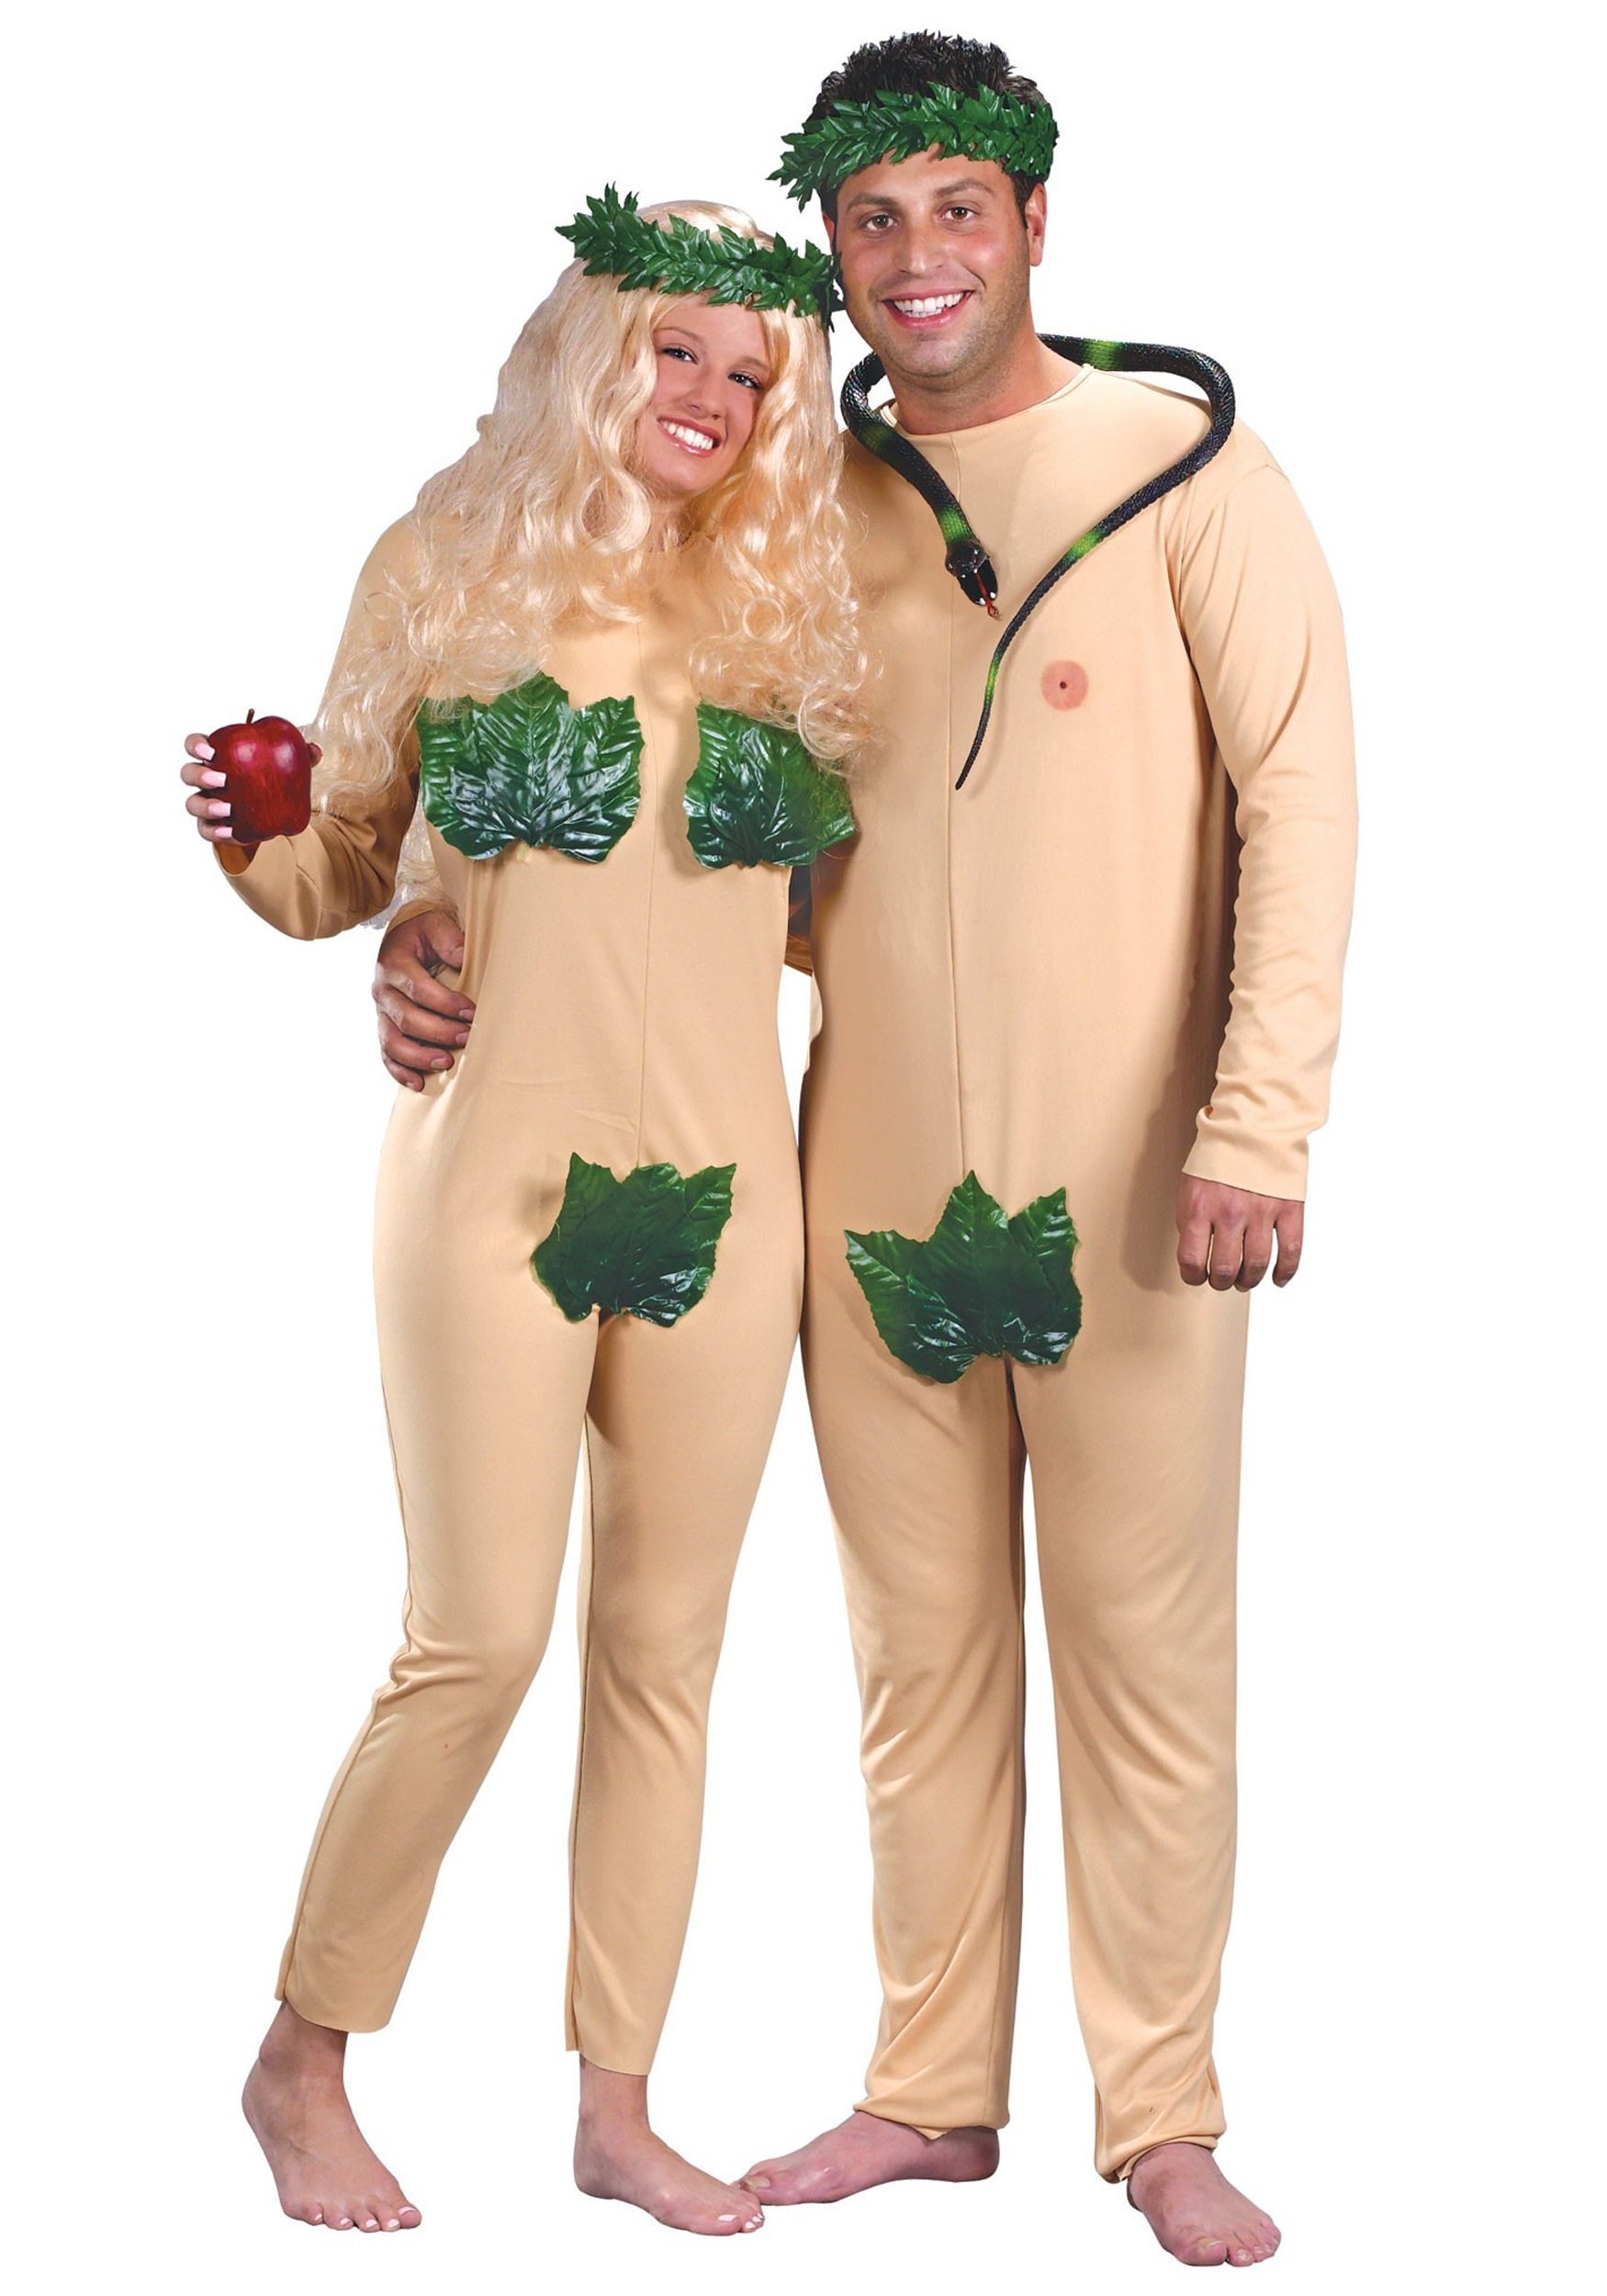 adam eve clothes for adults